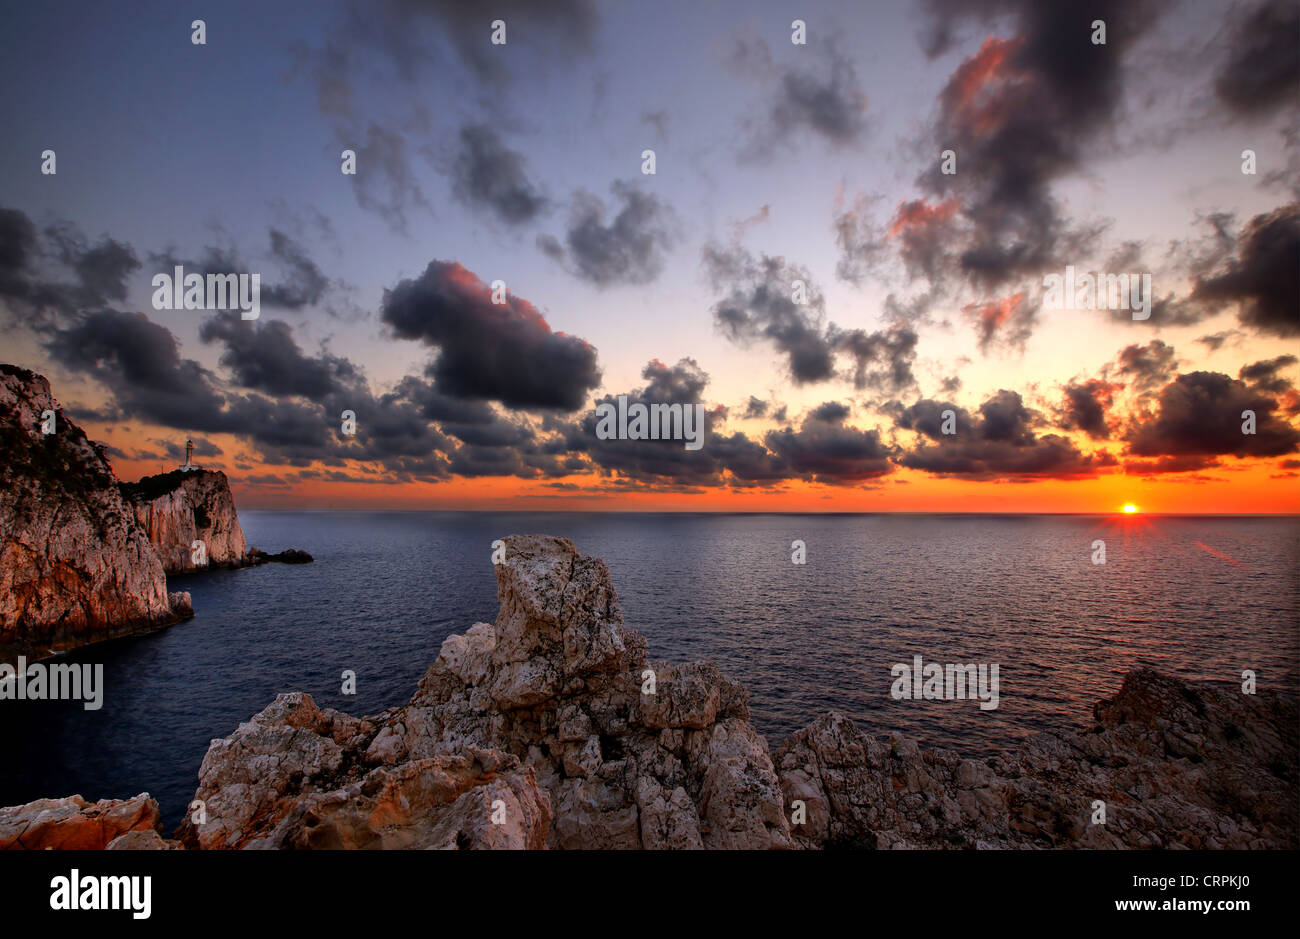 Sunset at Cape Lefkatas (also known as 'Cape Dukato' and 'Kavos tis Kyras'), Lefkada (or 'Lefkas') - Stock Image